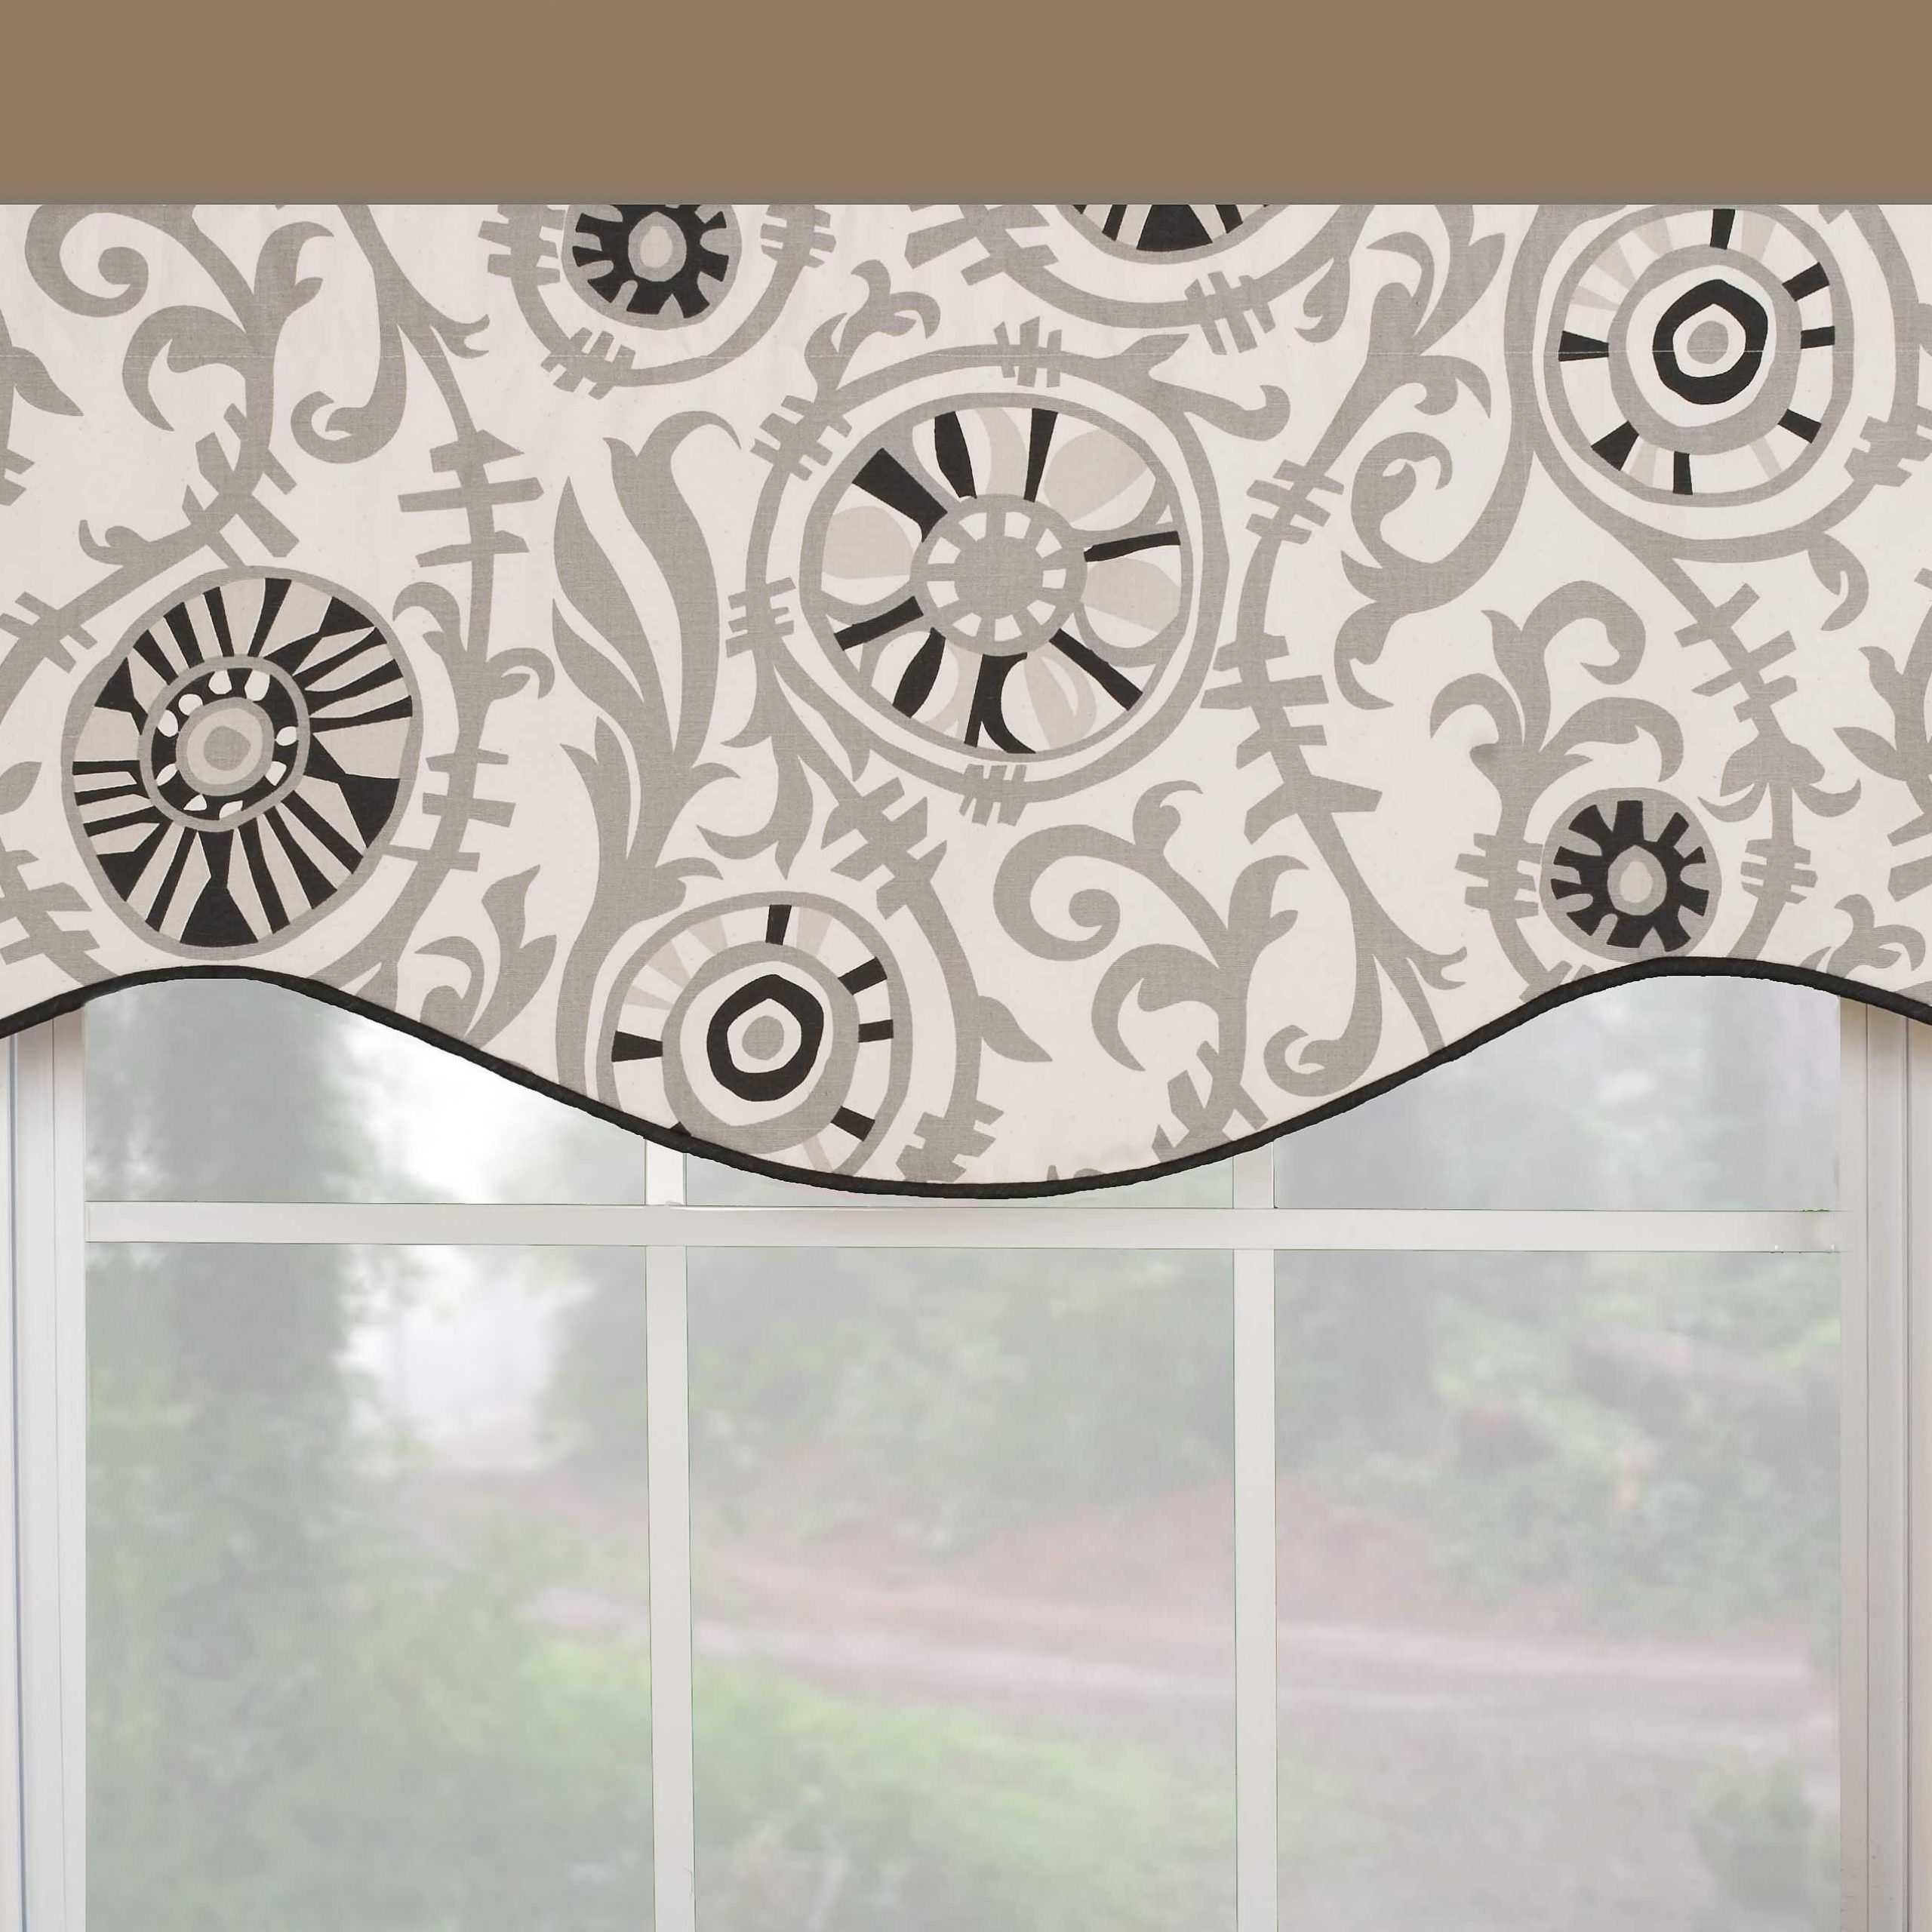 Popular Fascinating Window Valance White Knit Lace Bird Motif Pertaining To White Knit Lace Bird Motif Window Curtain Tiers (View 10 of 20)